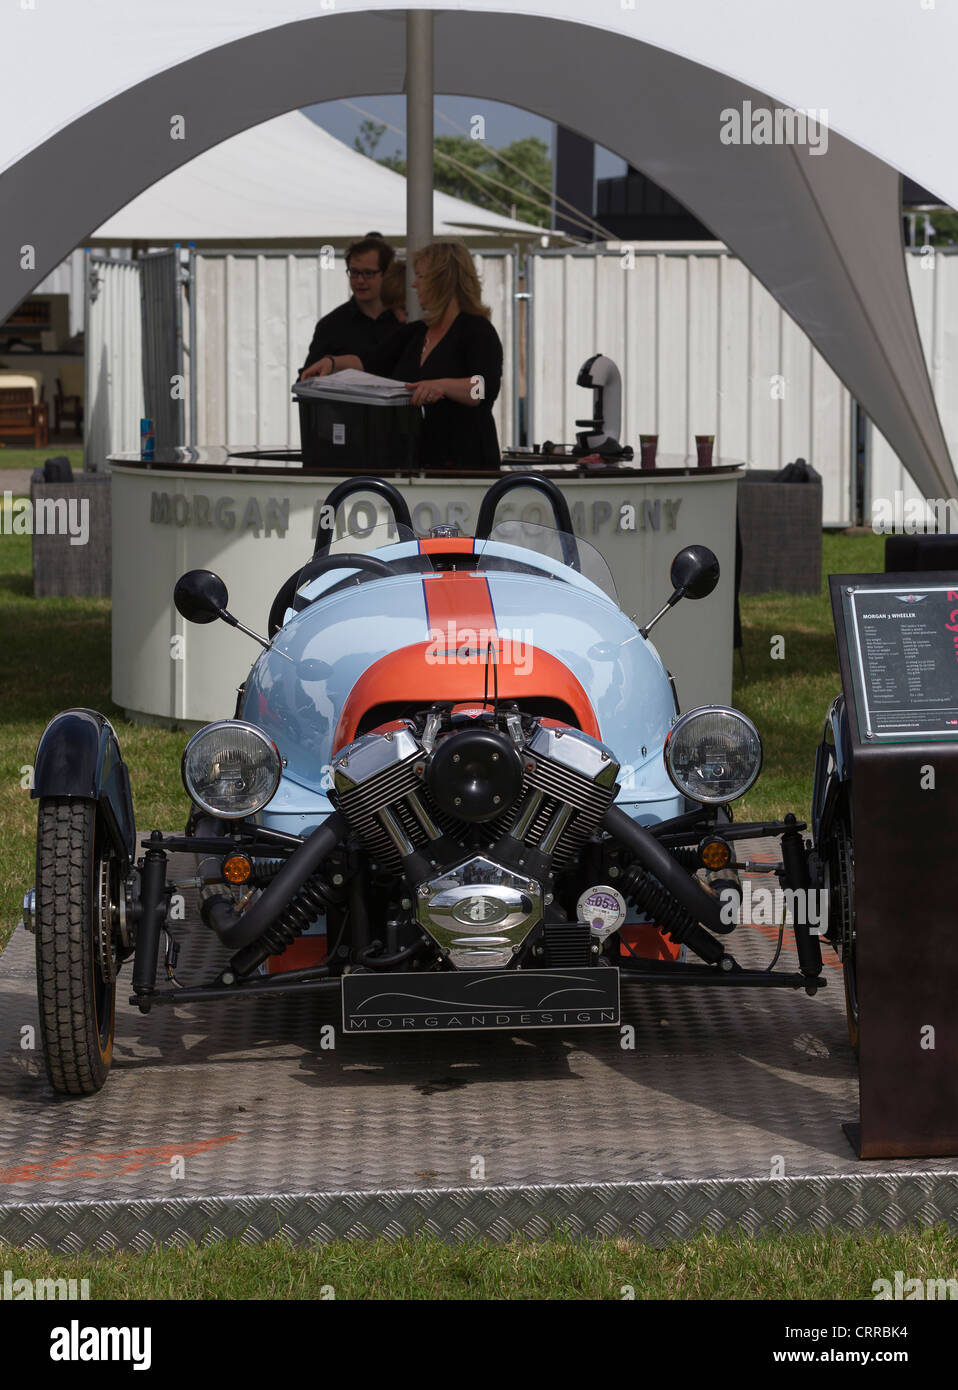 28th June 2012. Festival of Speed. Goodwood House. West Sussex. UK - Stock Image